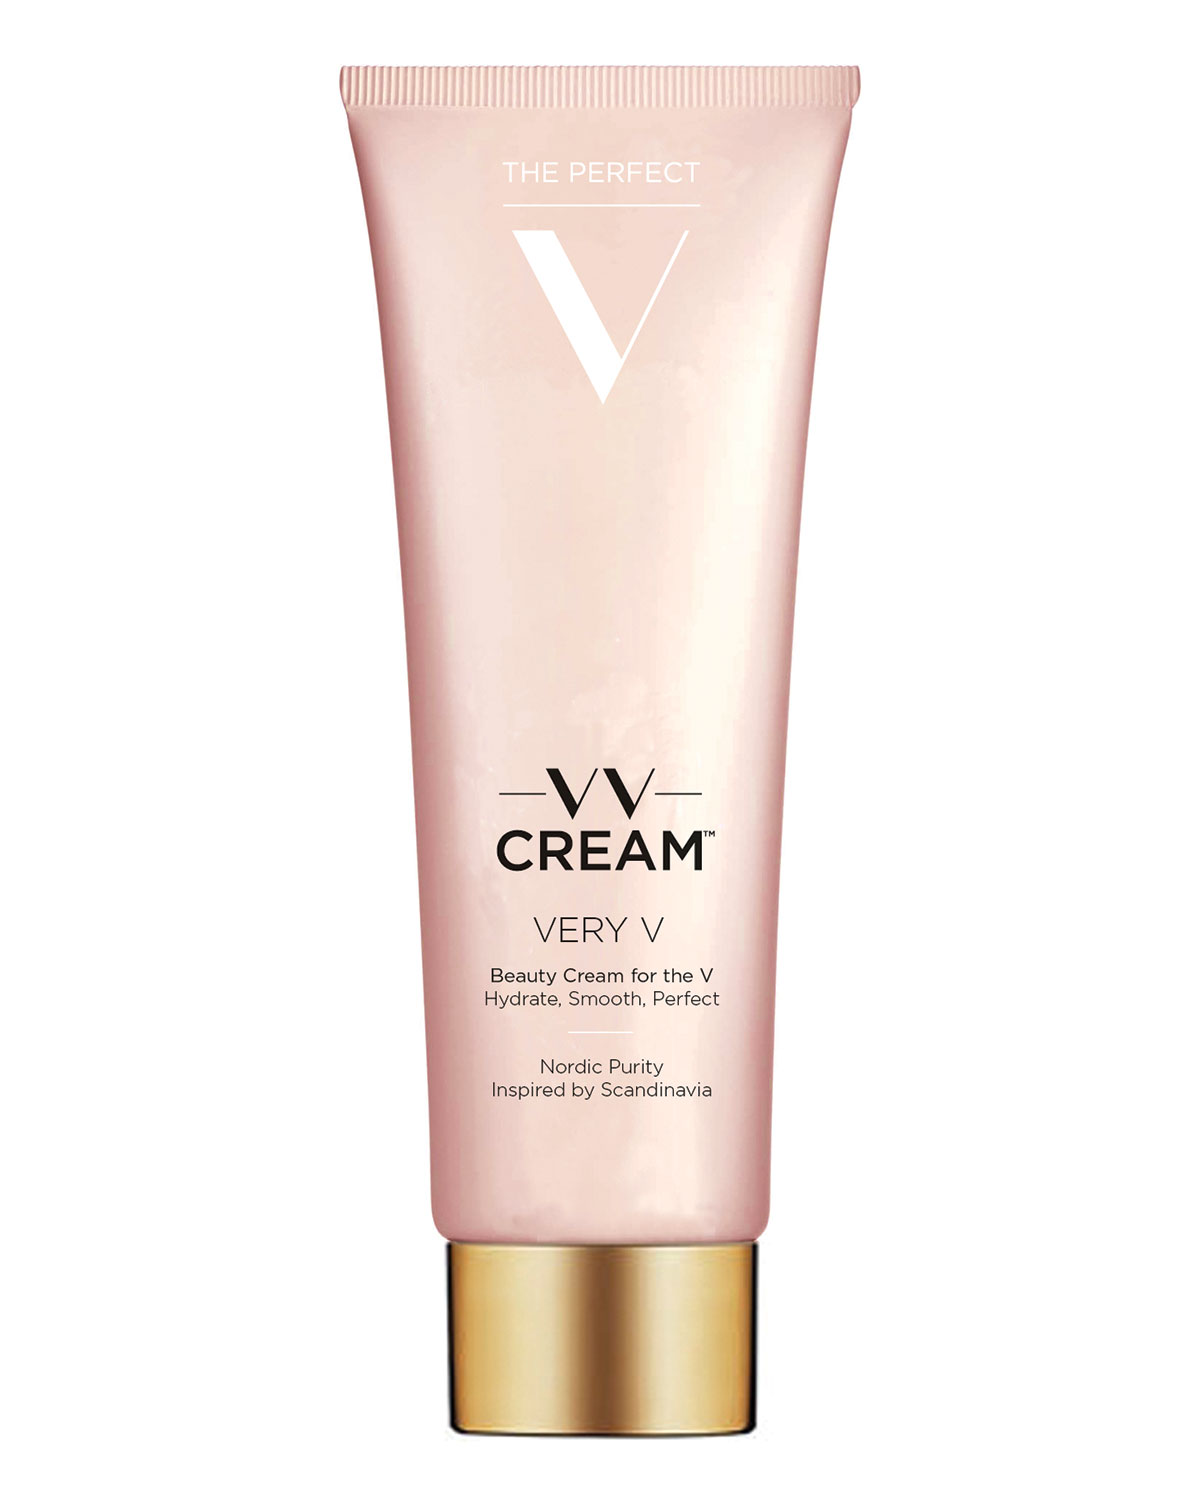 THE PERFECT V Vv Cream, 1.7 Oz./ 50 Ml